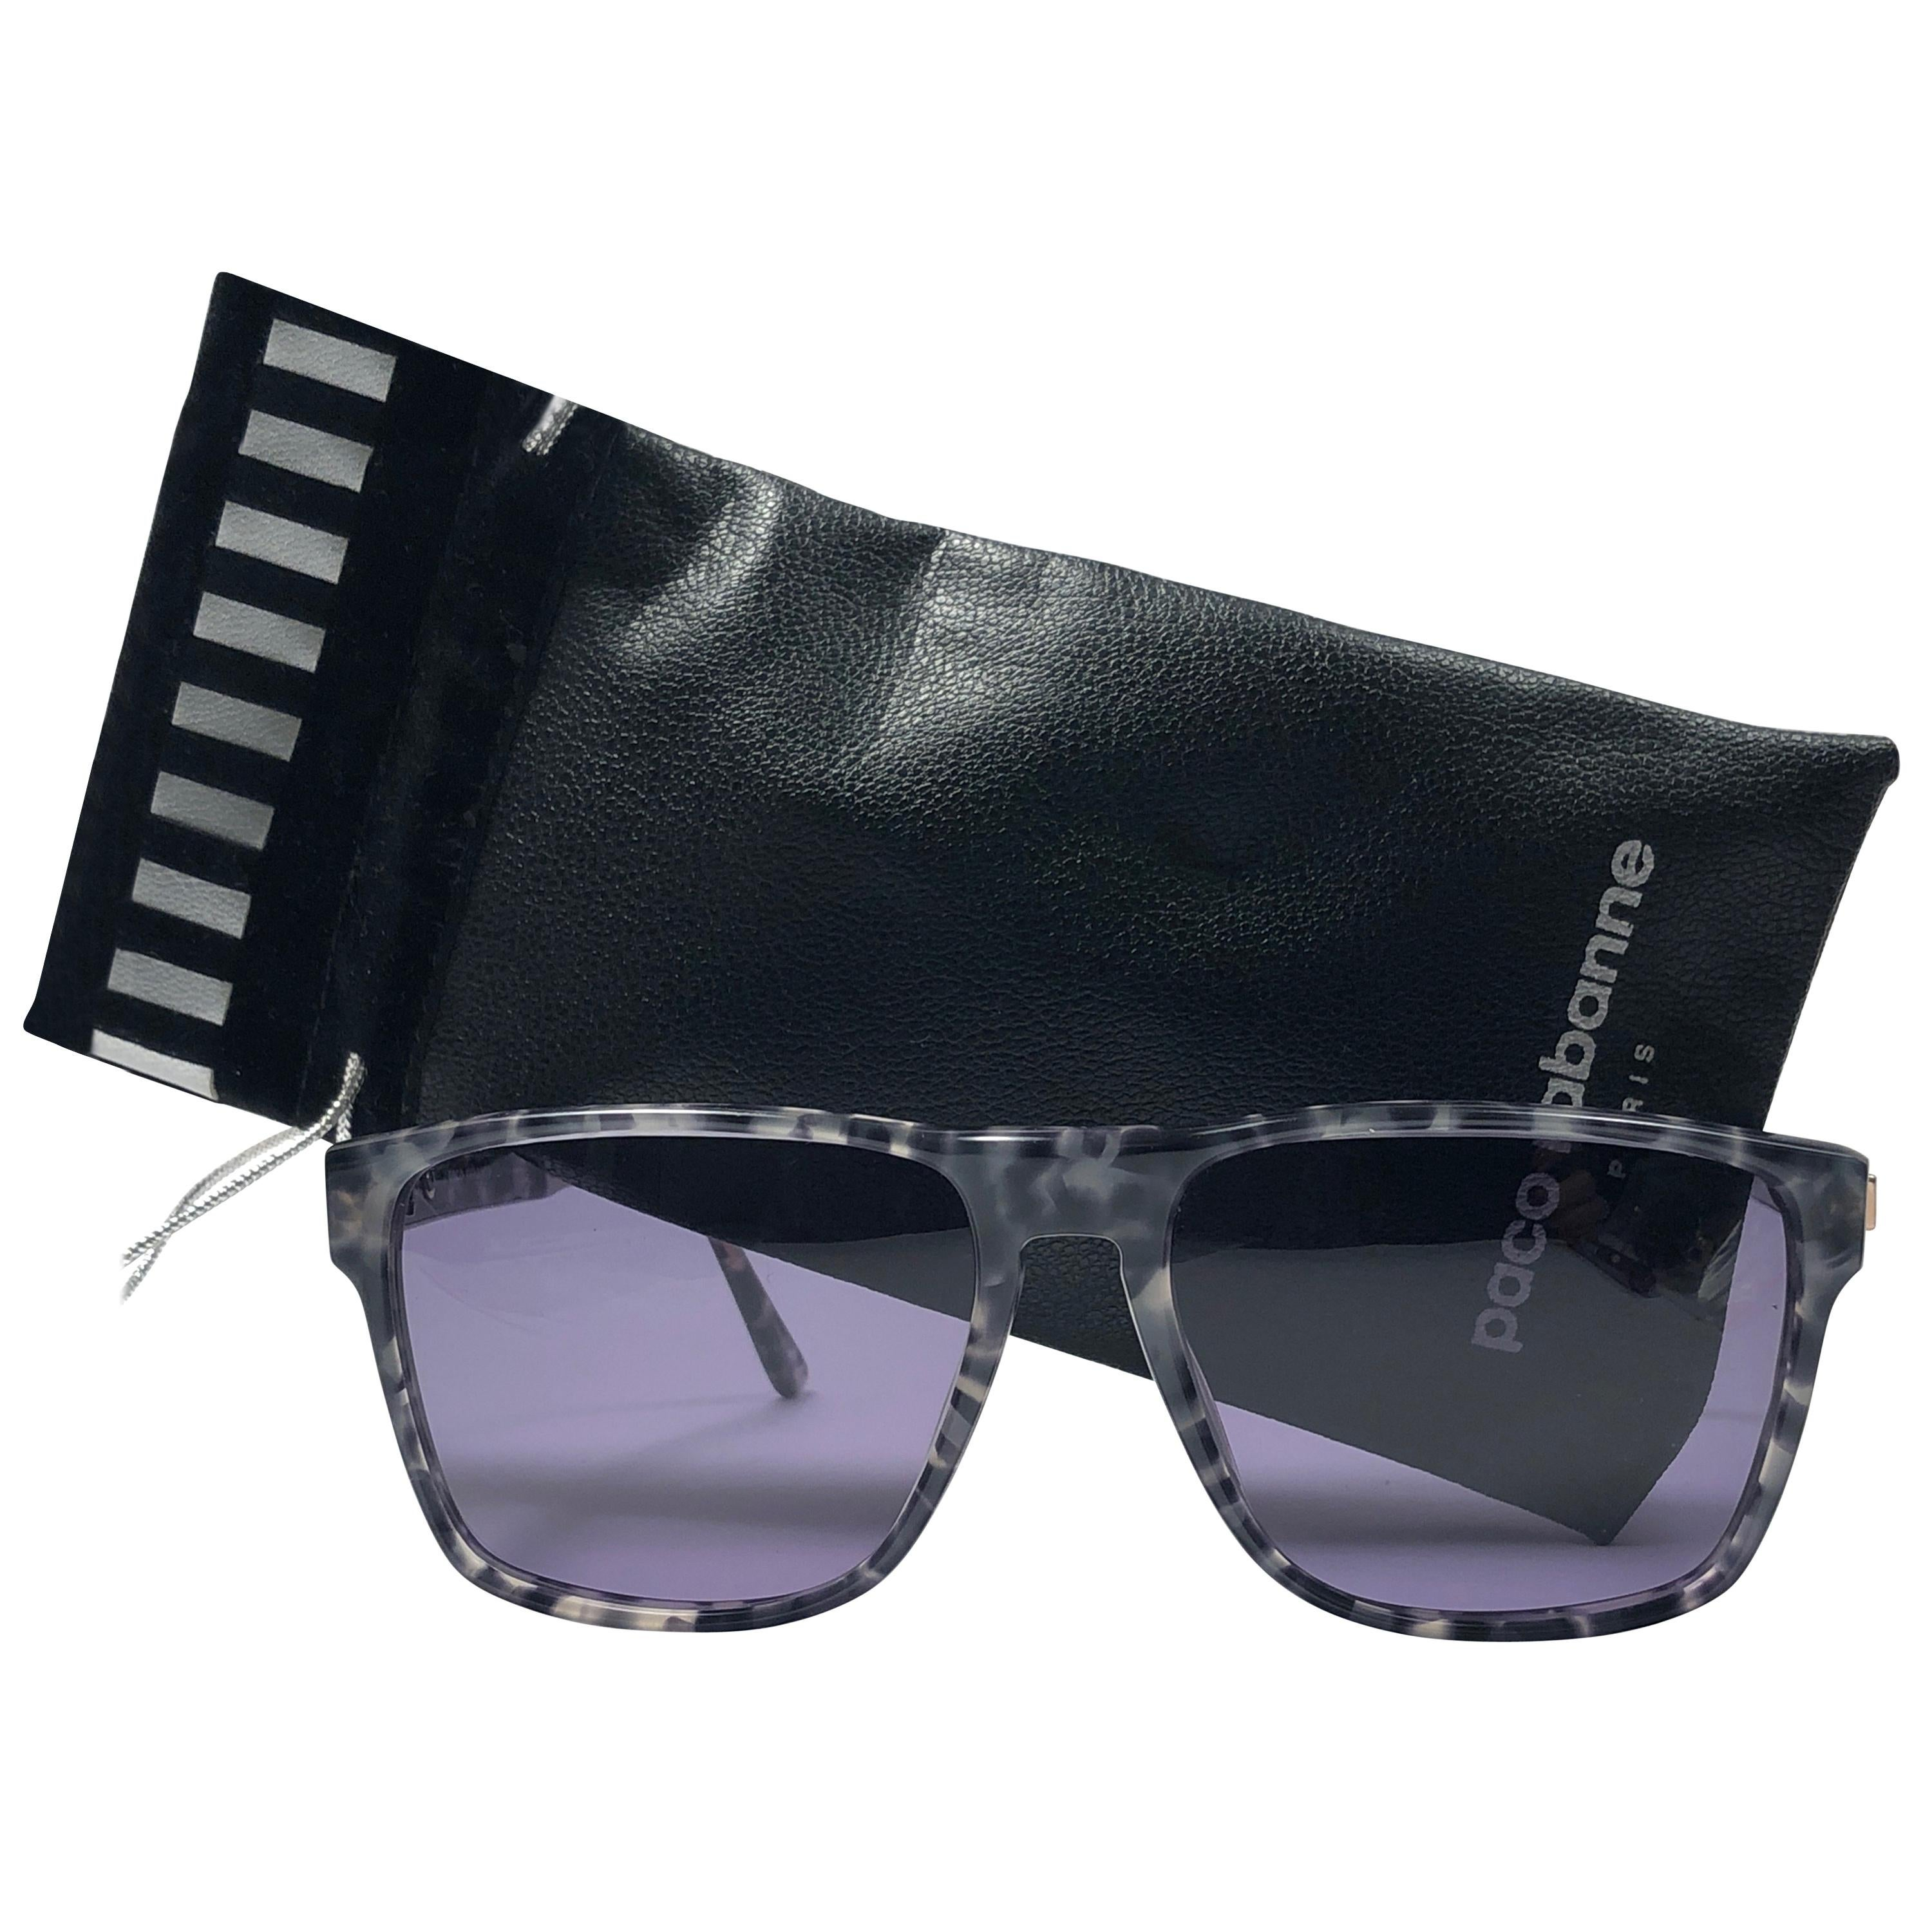 f5767723247 1980s Sunglasses - 639 For Sale at 1stdibs - Page 2